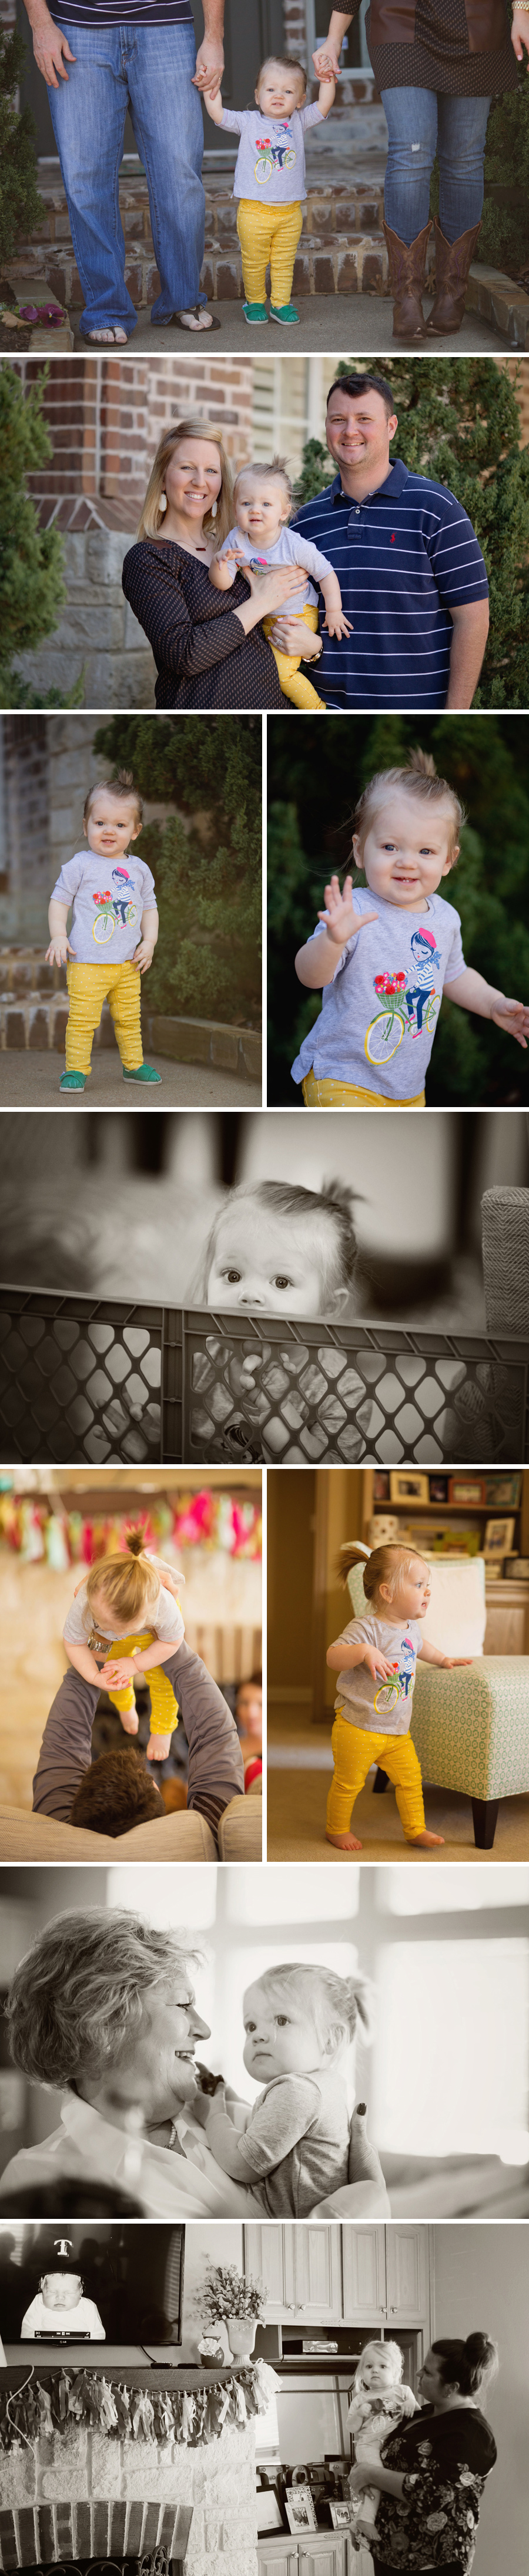 Dallas-Baby-PhotographerG006